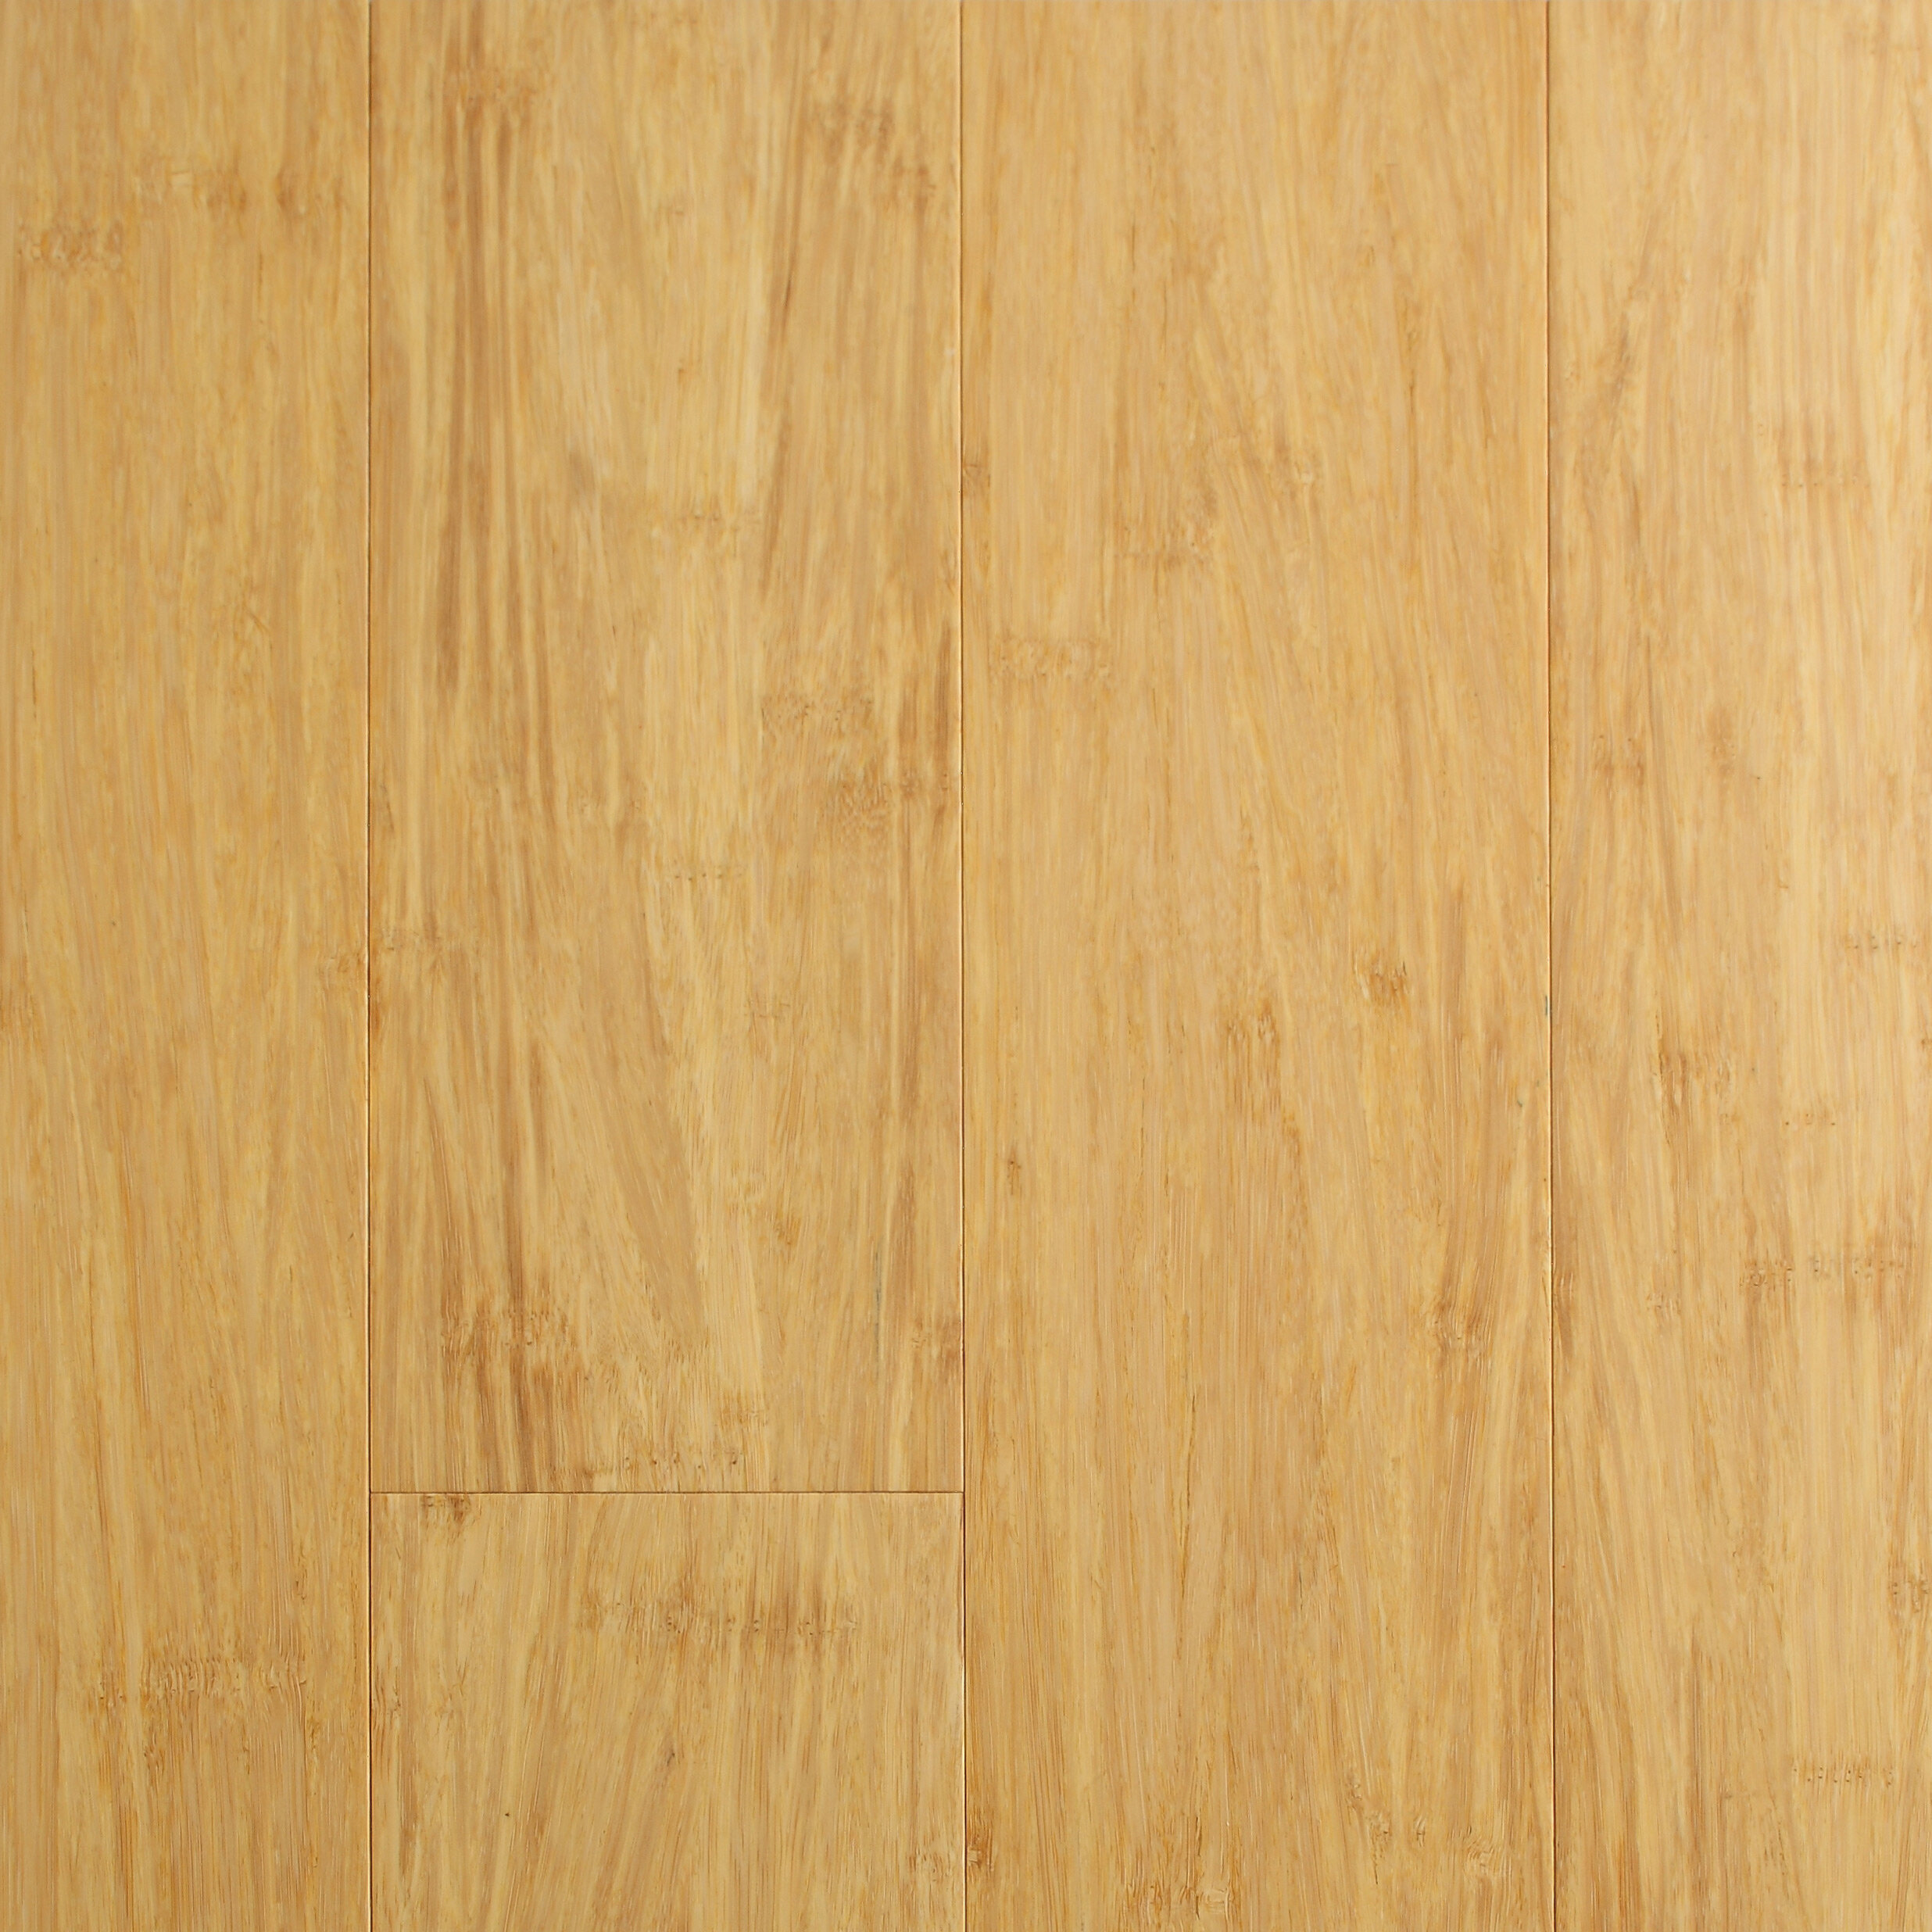 "Albero Valley 4 1 2"" Solid Strandwoven Bamboo Flooring in Natural"